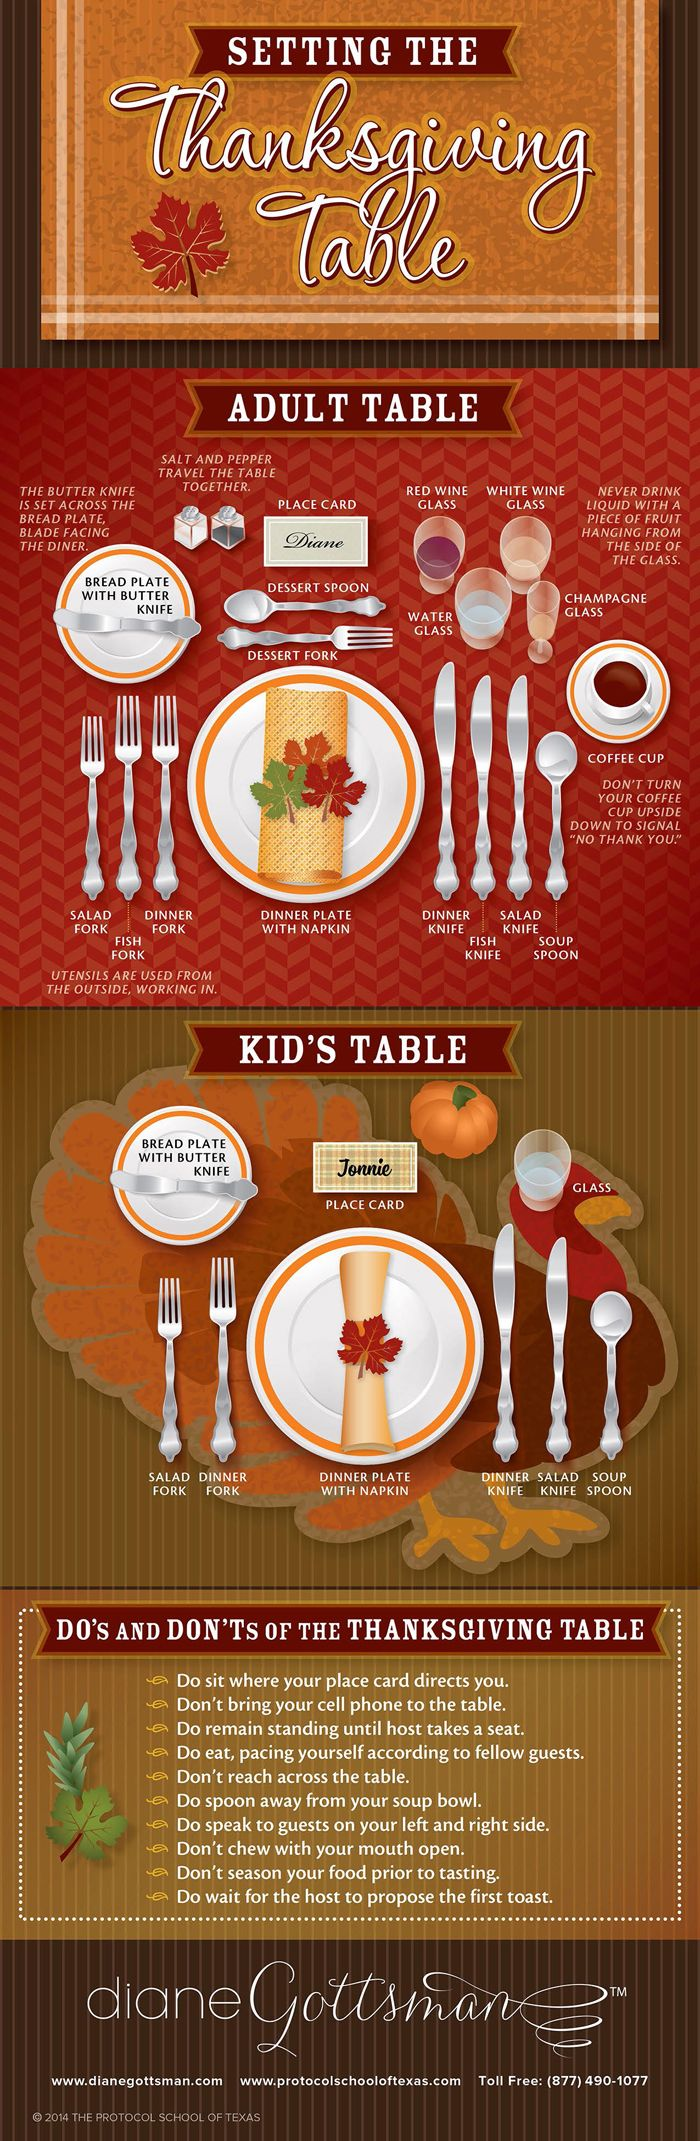 Thanksgiving Place Setting Guide www.dianegottsman.com  #thanksgiving #tableguide #settingtheholidaytable #holidaydining